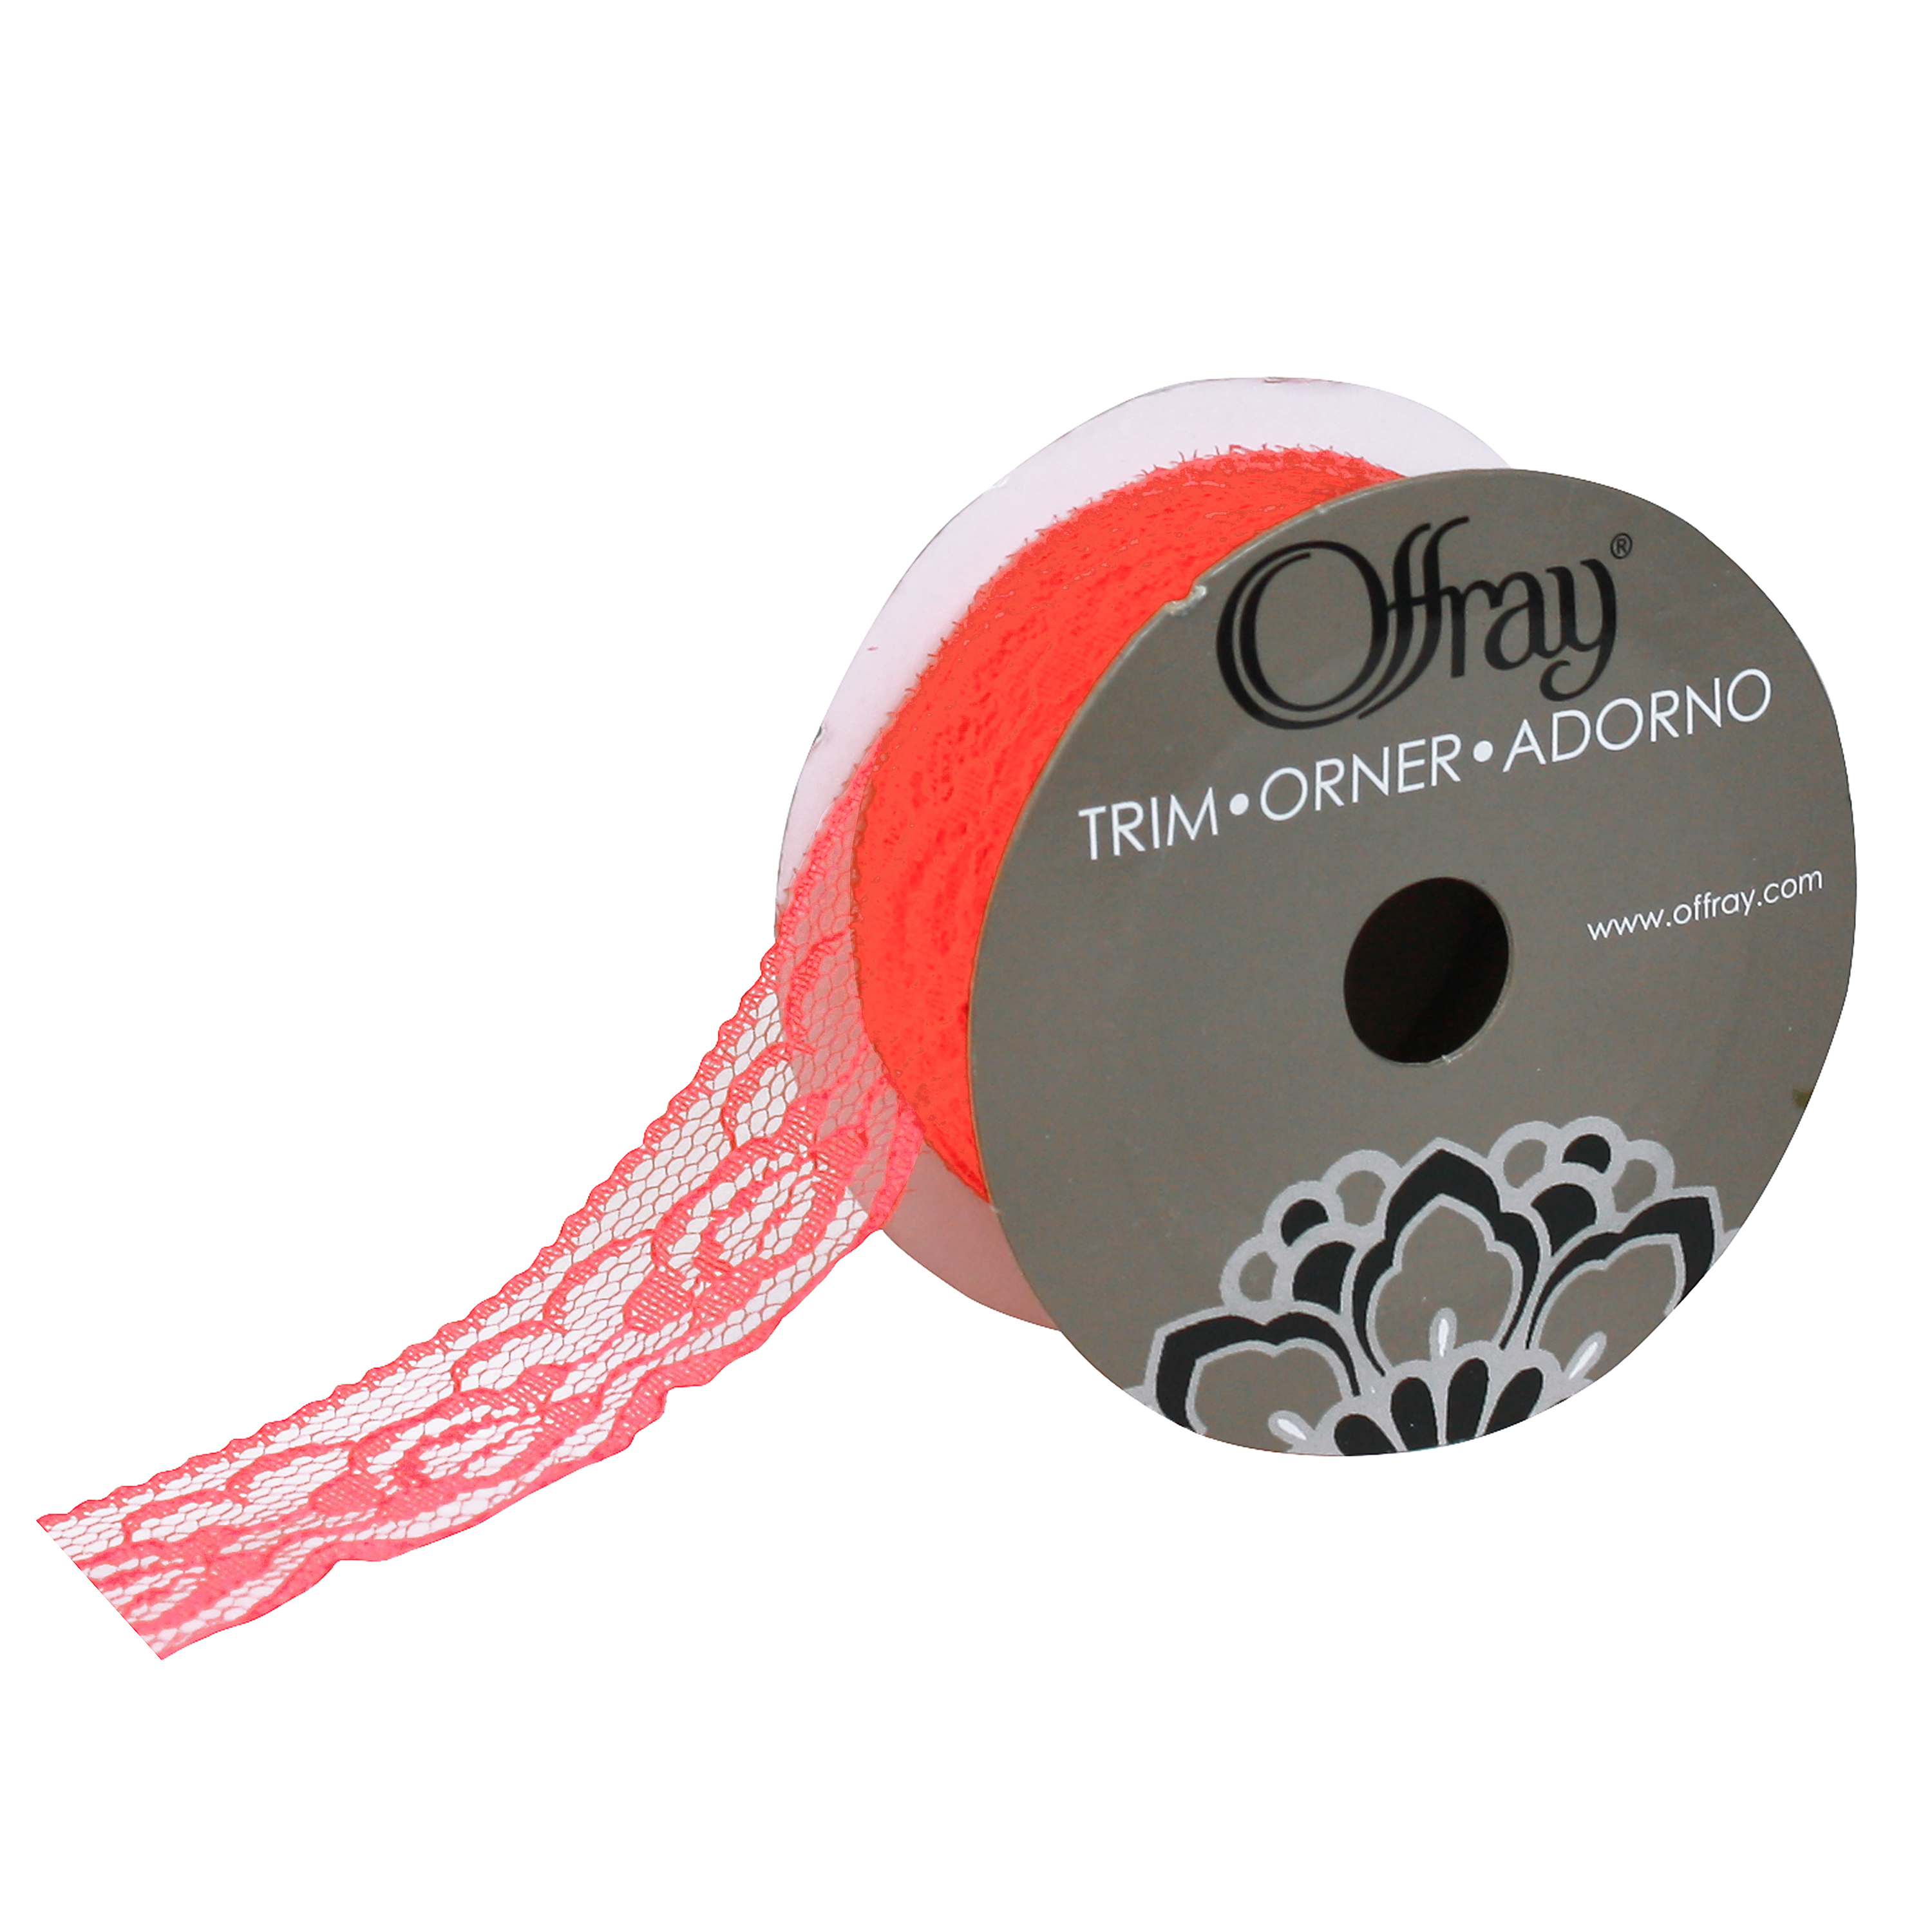 OFFRAY TRIM CORAL EMPIRE LACE 1 1/4 INCHES X 3 YARDS